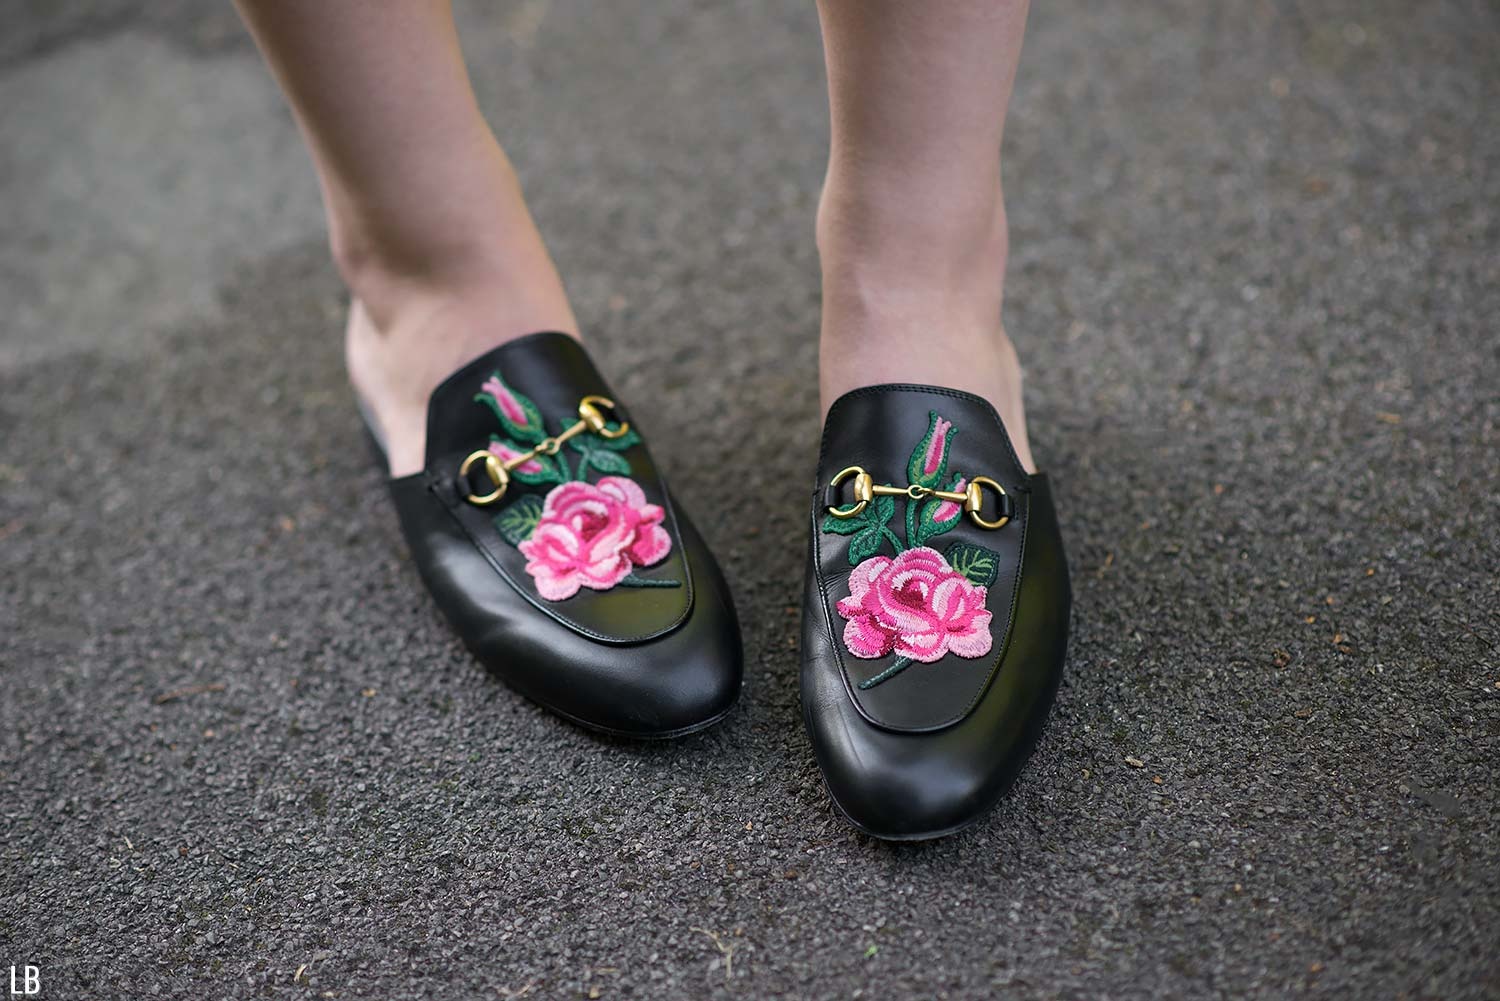 fdc1c8273f39d8 Now I am sure it s no surprise for you to see these Gucci Floral  Embroidered Princetown Loafers in my selection! I did a review on them last  year and I ve ...